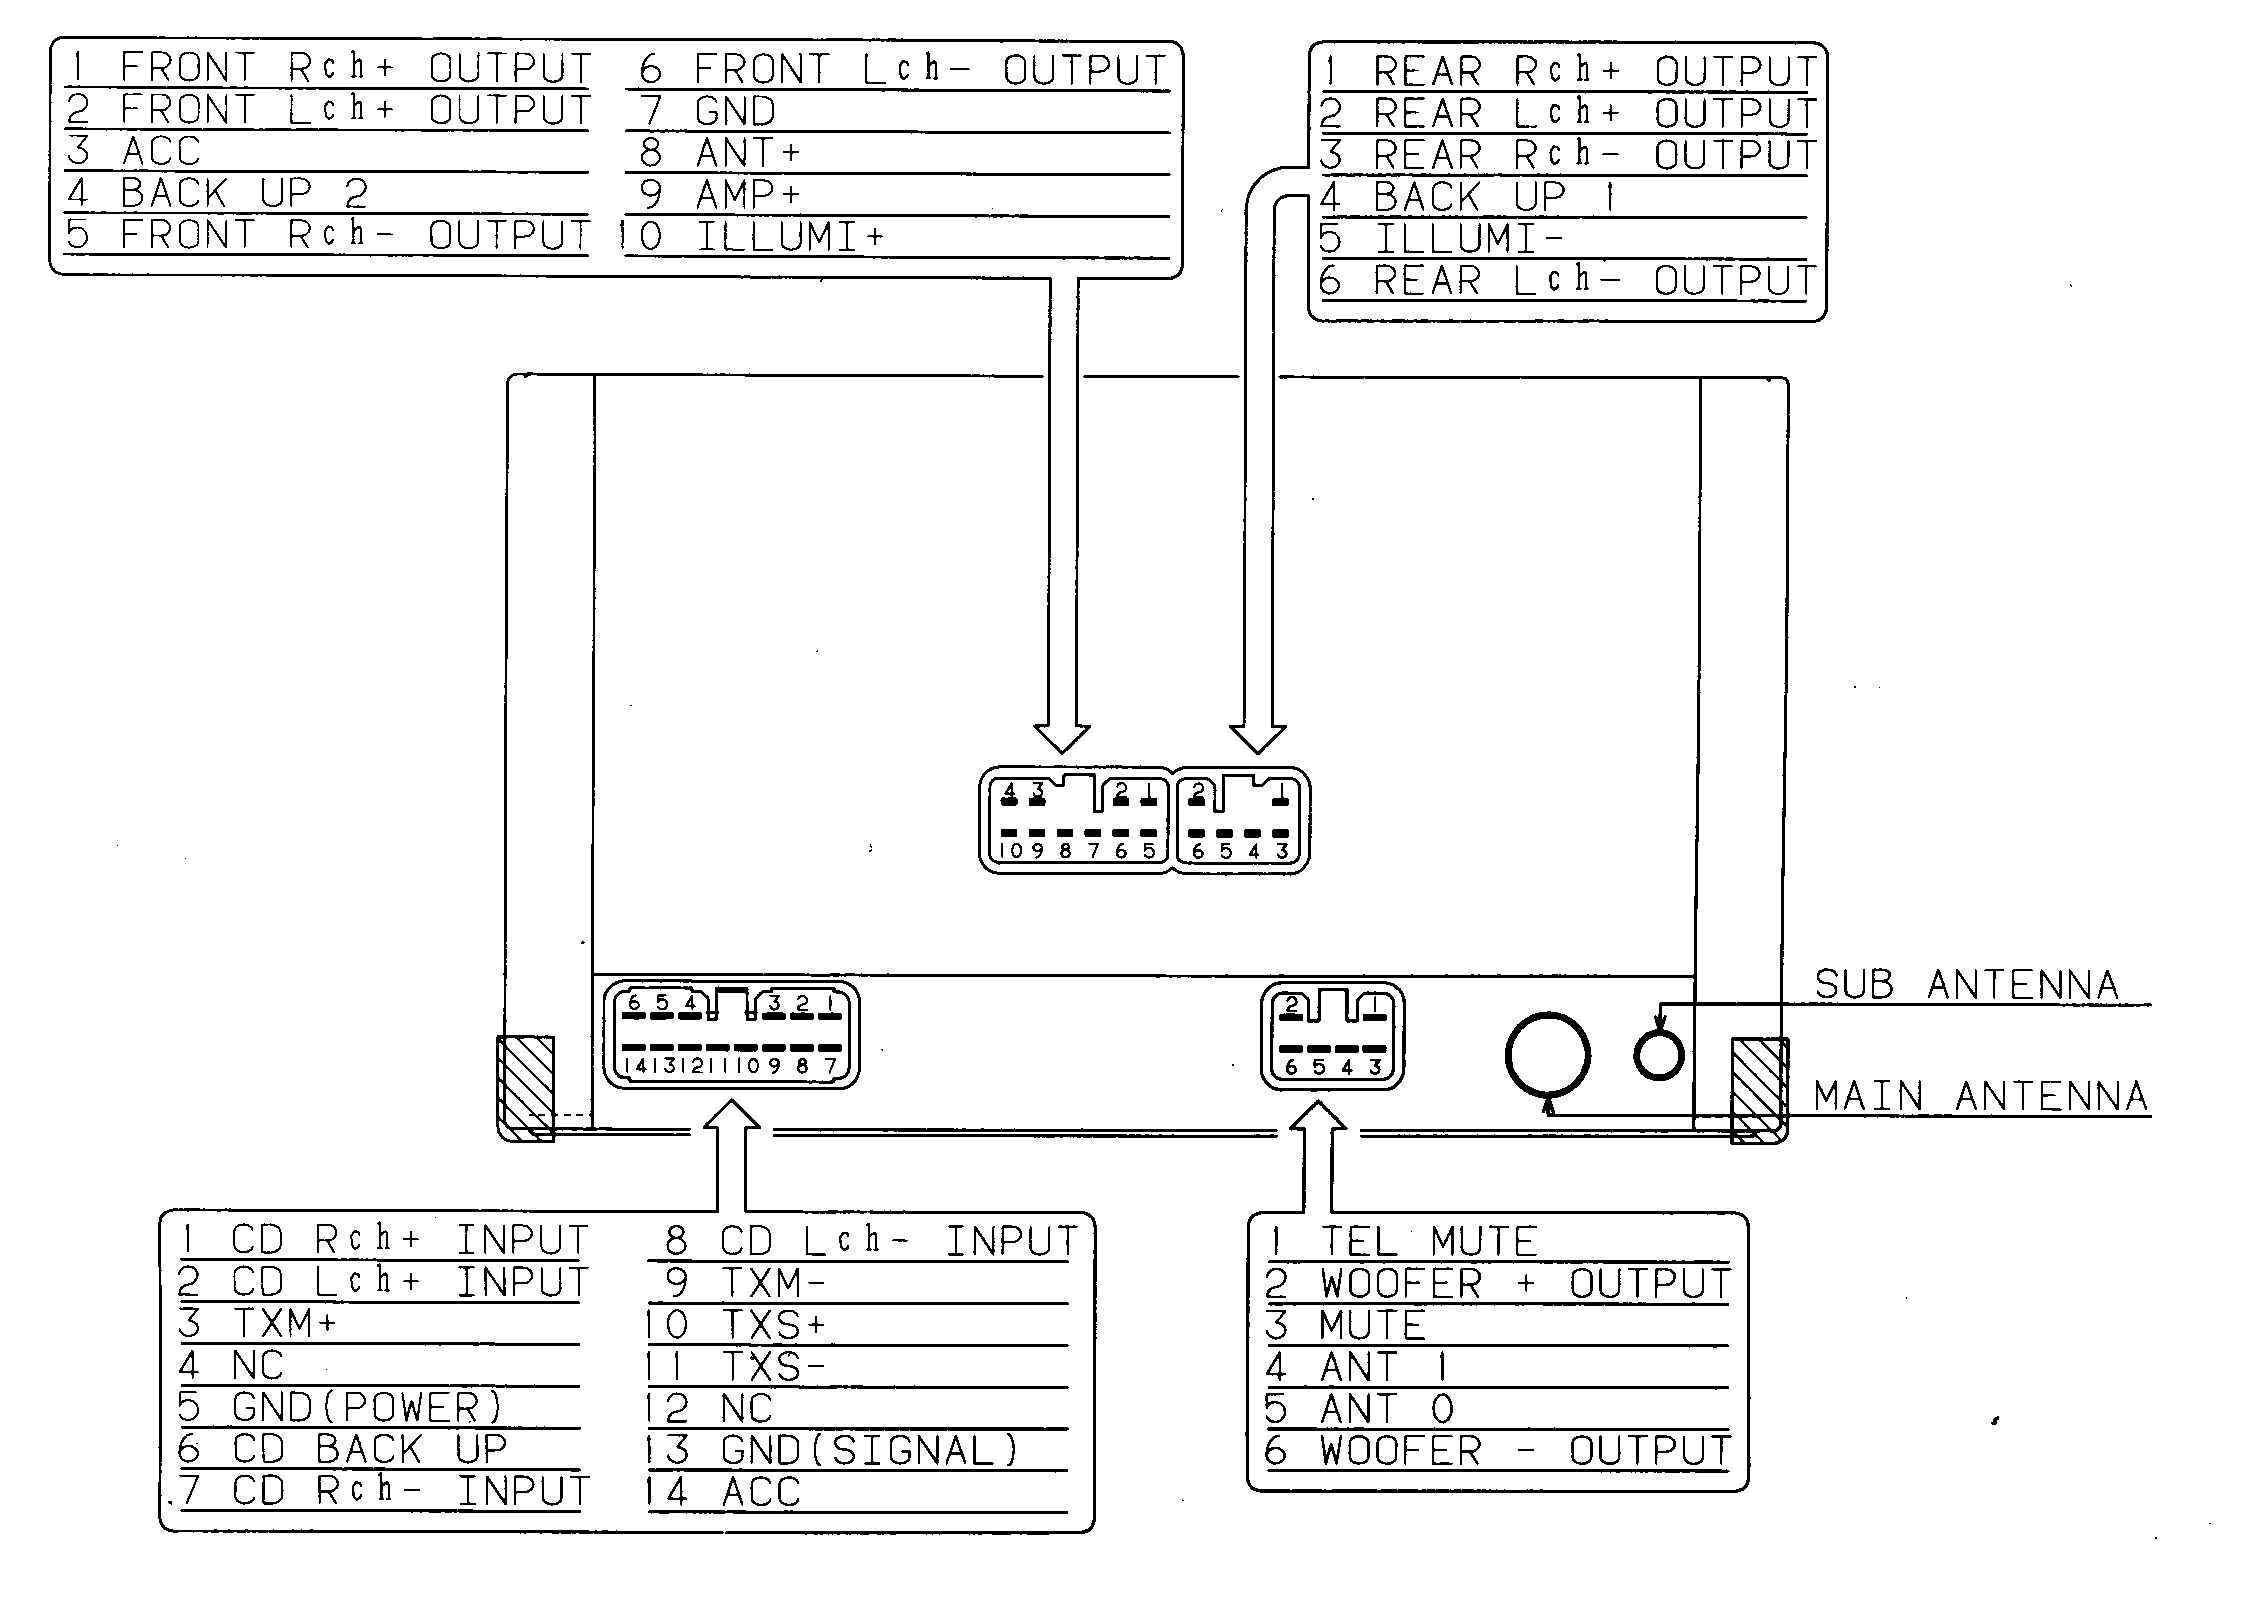 Lexus car stereo wiring diagram harness pinout connector wire 1996 jeep grand cherokee car stereo radio wiring diagram wiring 2002 jeep cherokee radio wiring diagram at bayanpartner.co